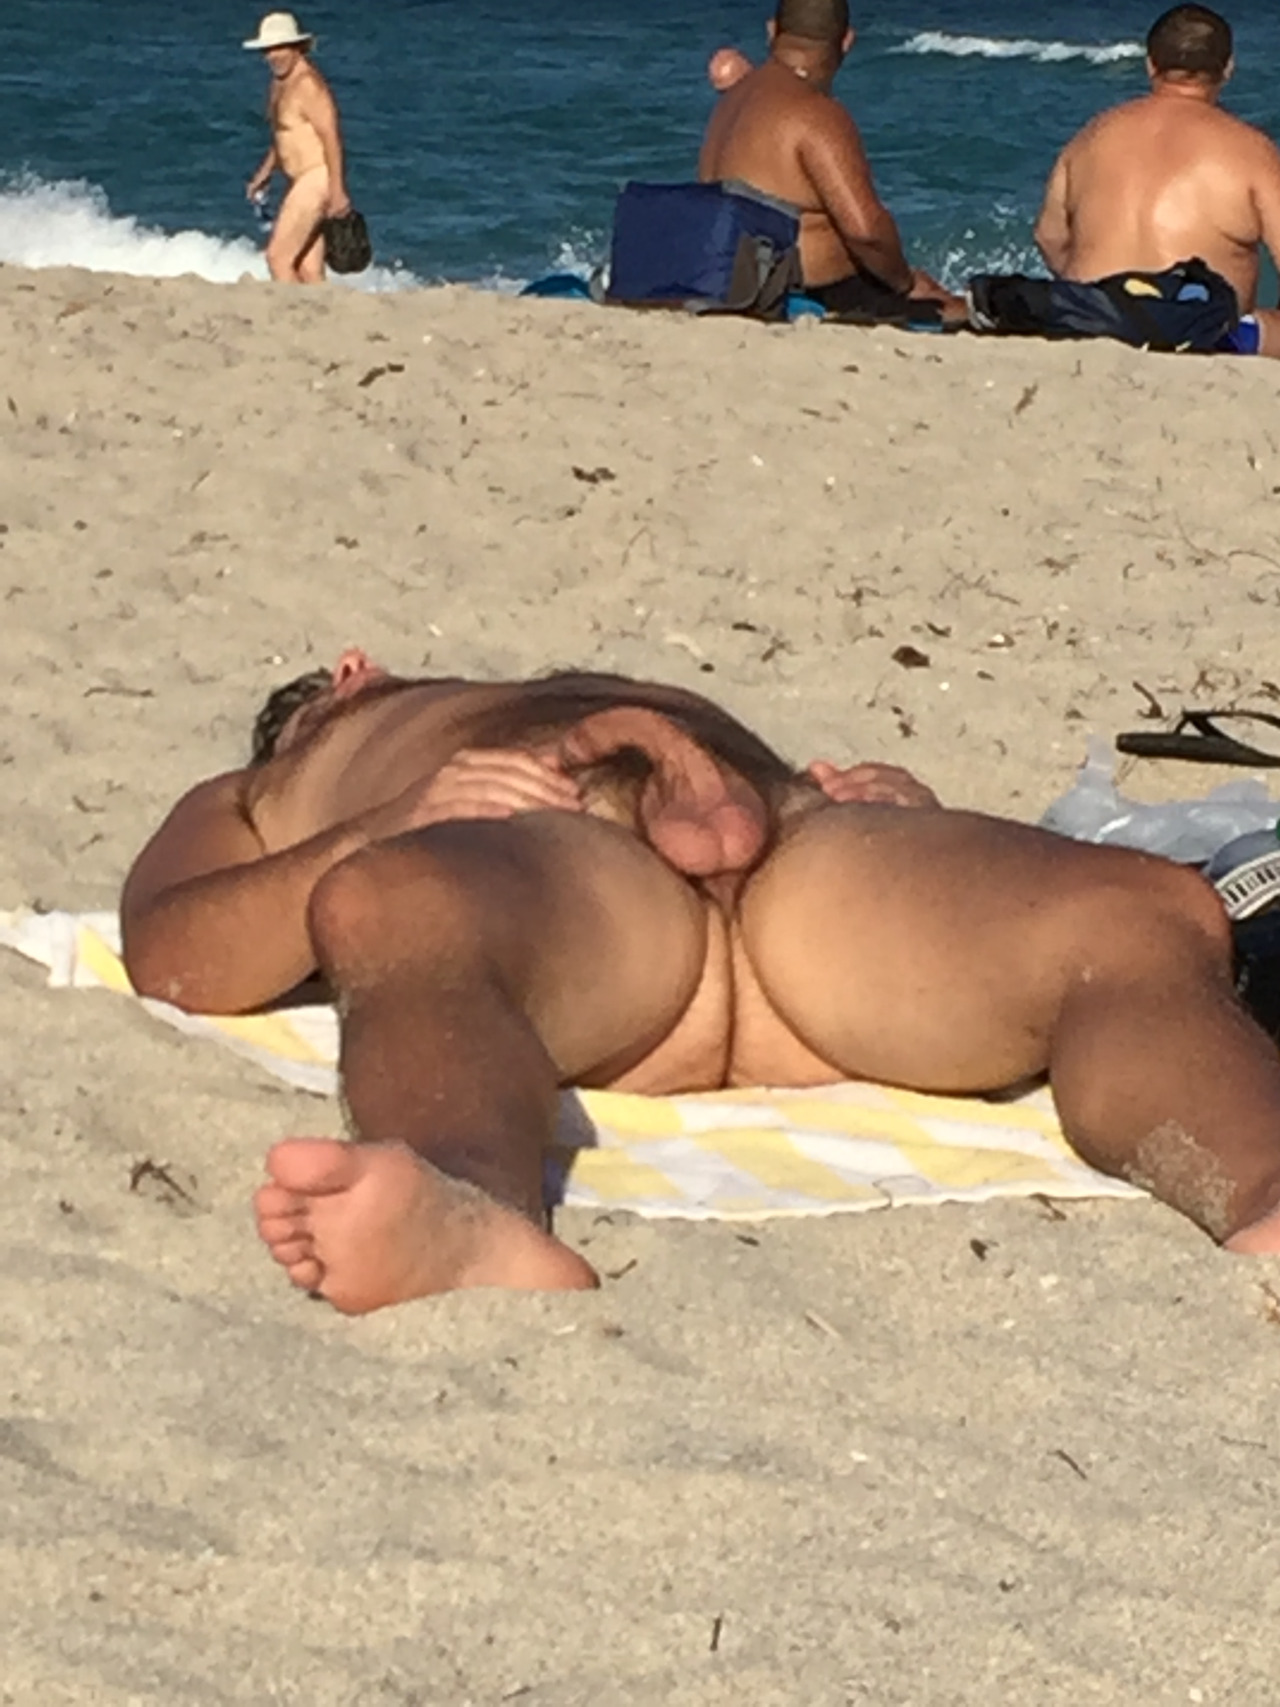 boner boys beach Nude